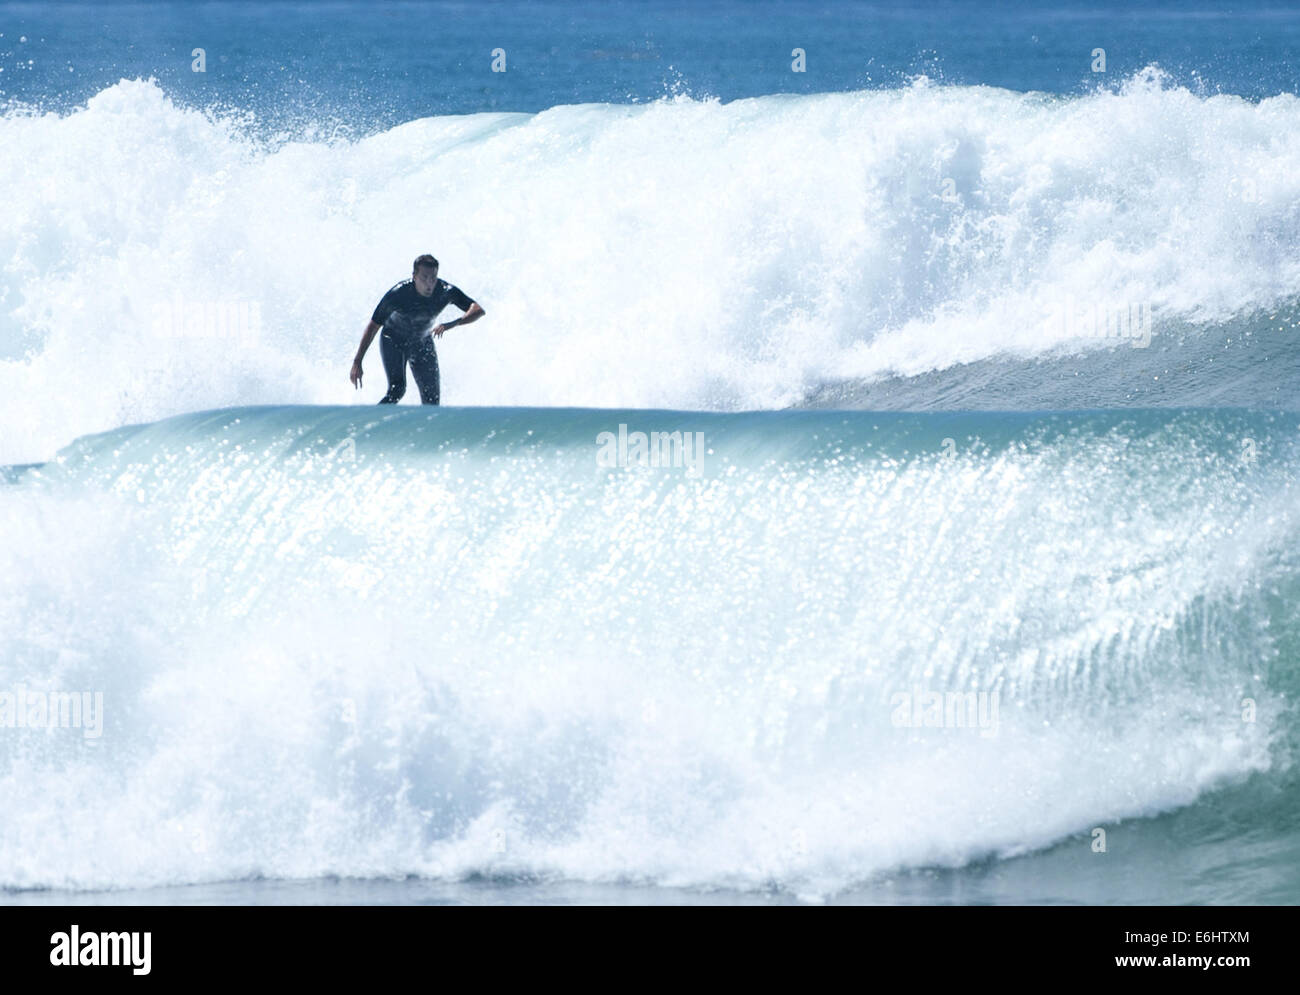 San Clemente, California, USA. 23rd Aug, 2014. A surfer plows through the white wash at the end of a long ride near - Stock Image